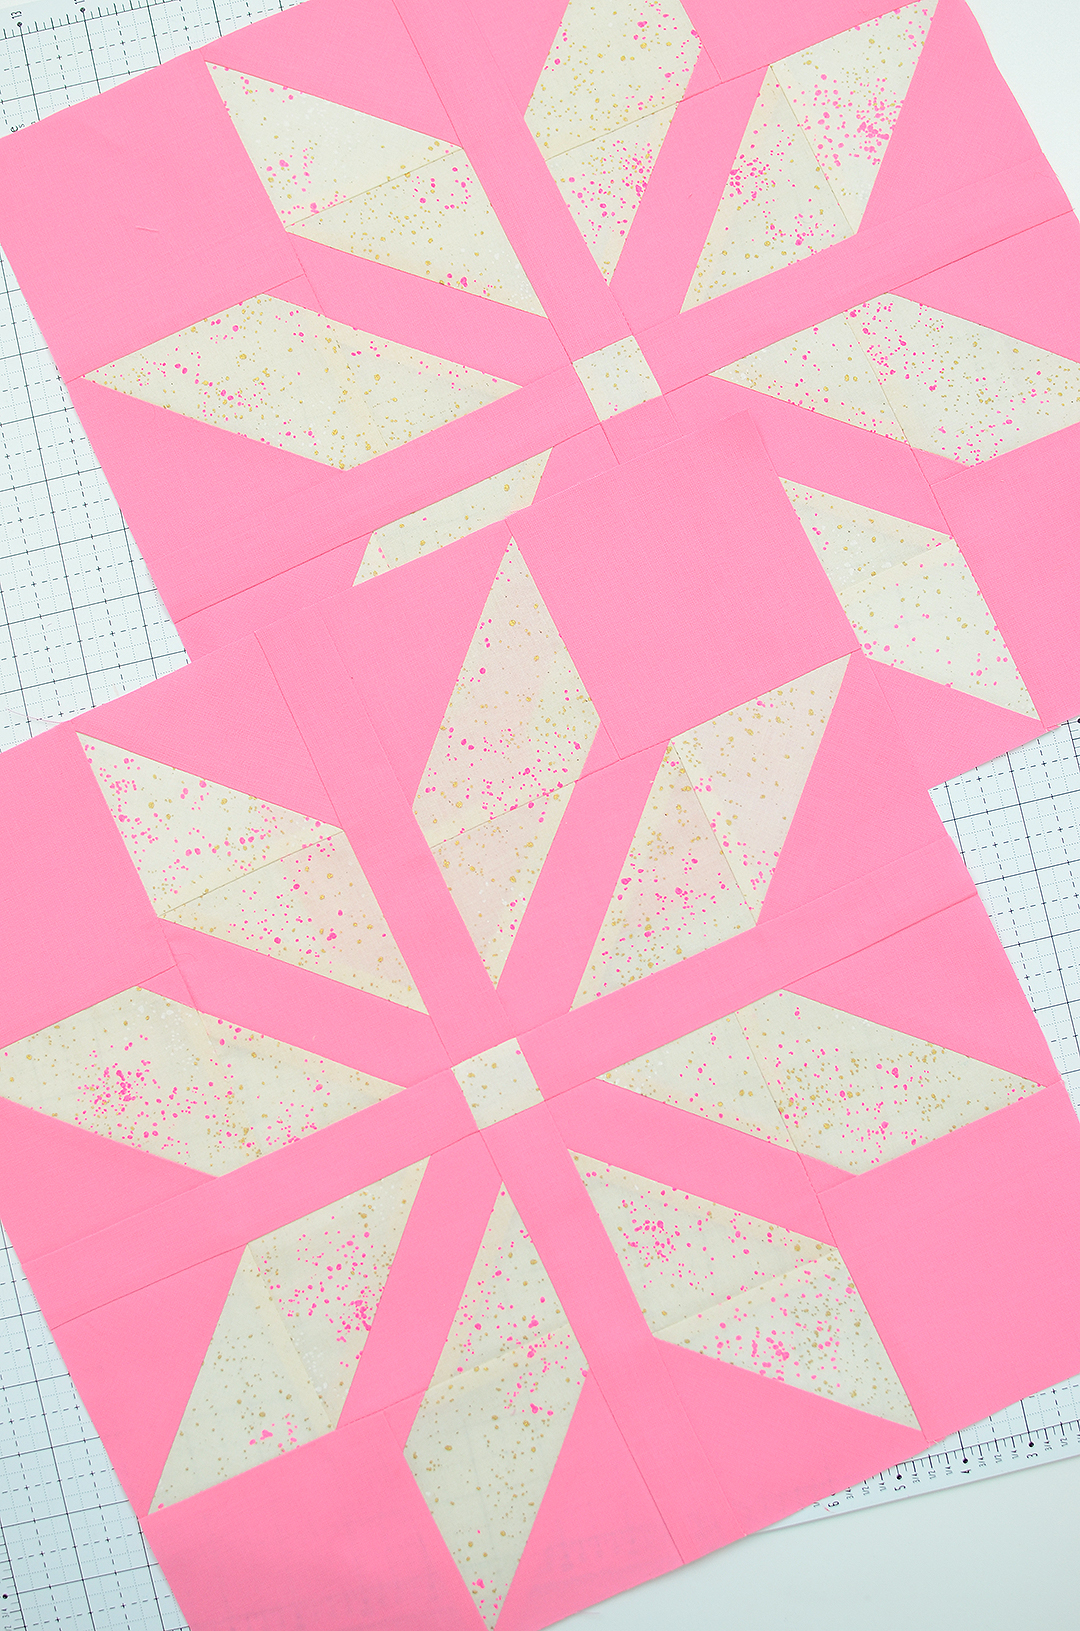 Pink star quilt blocks